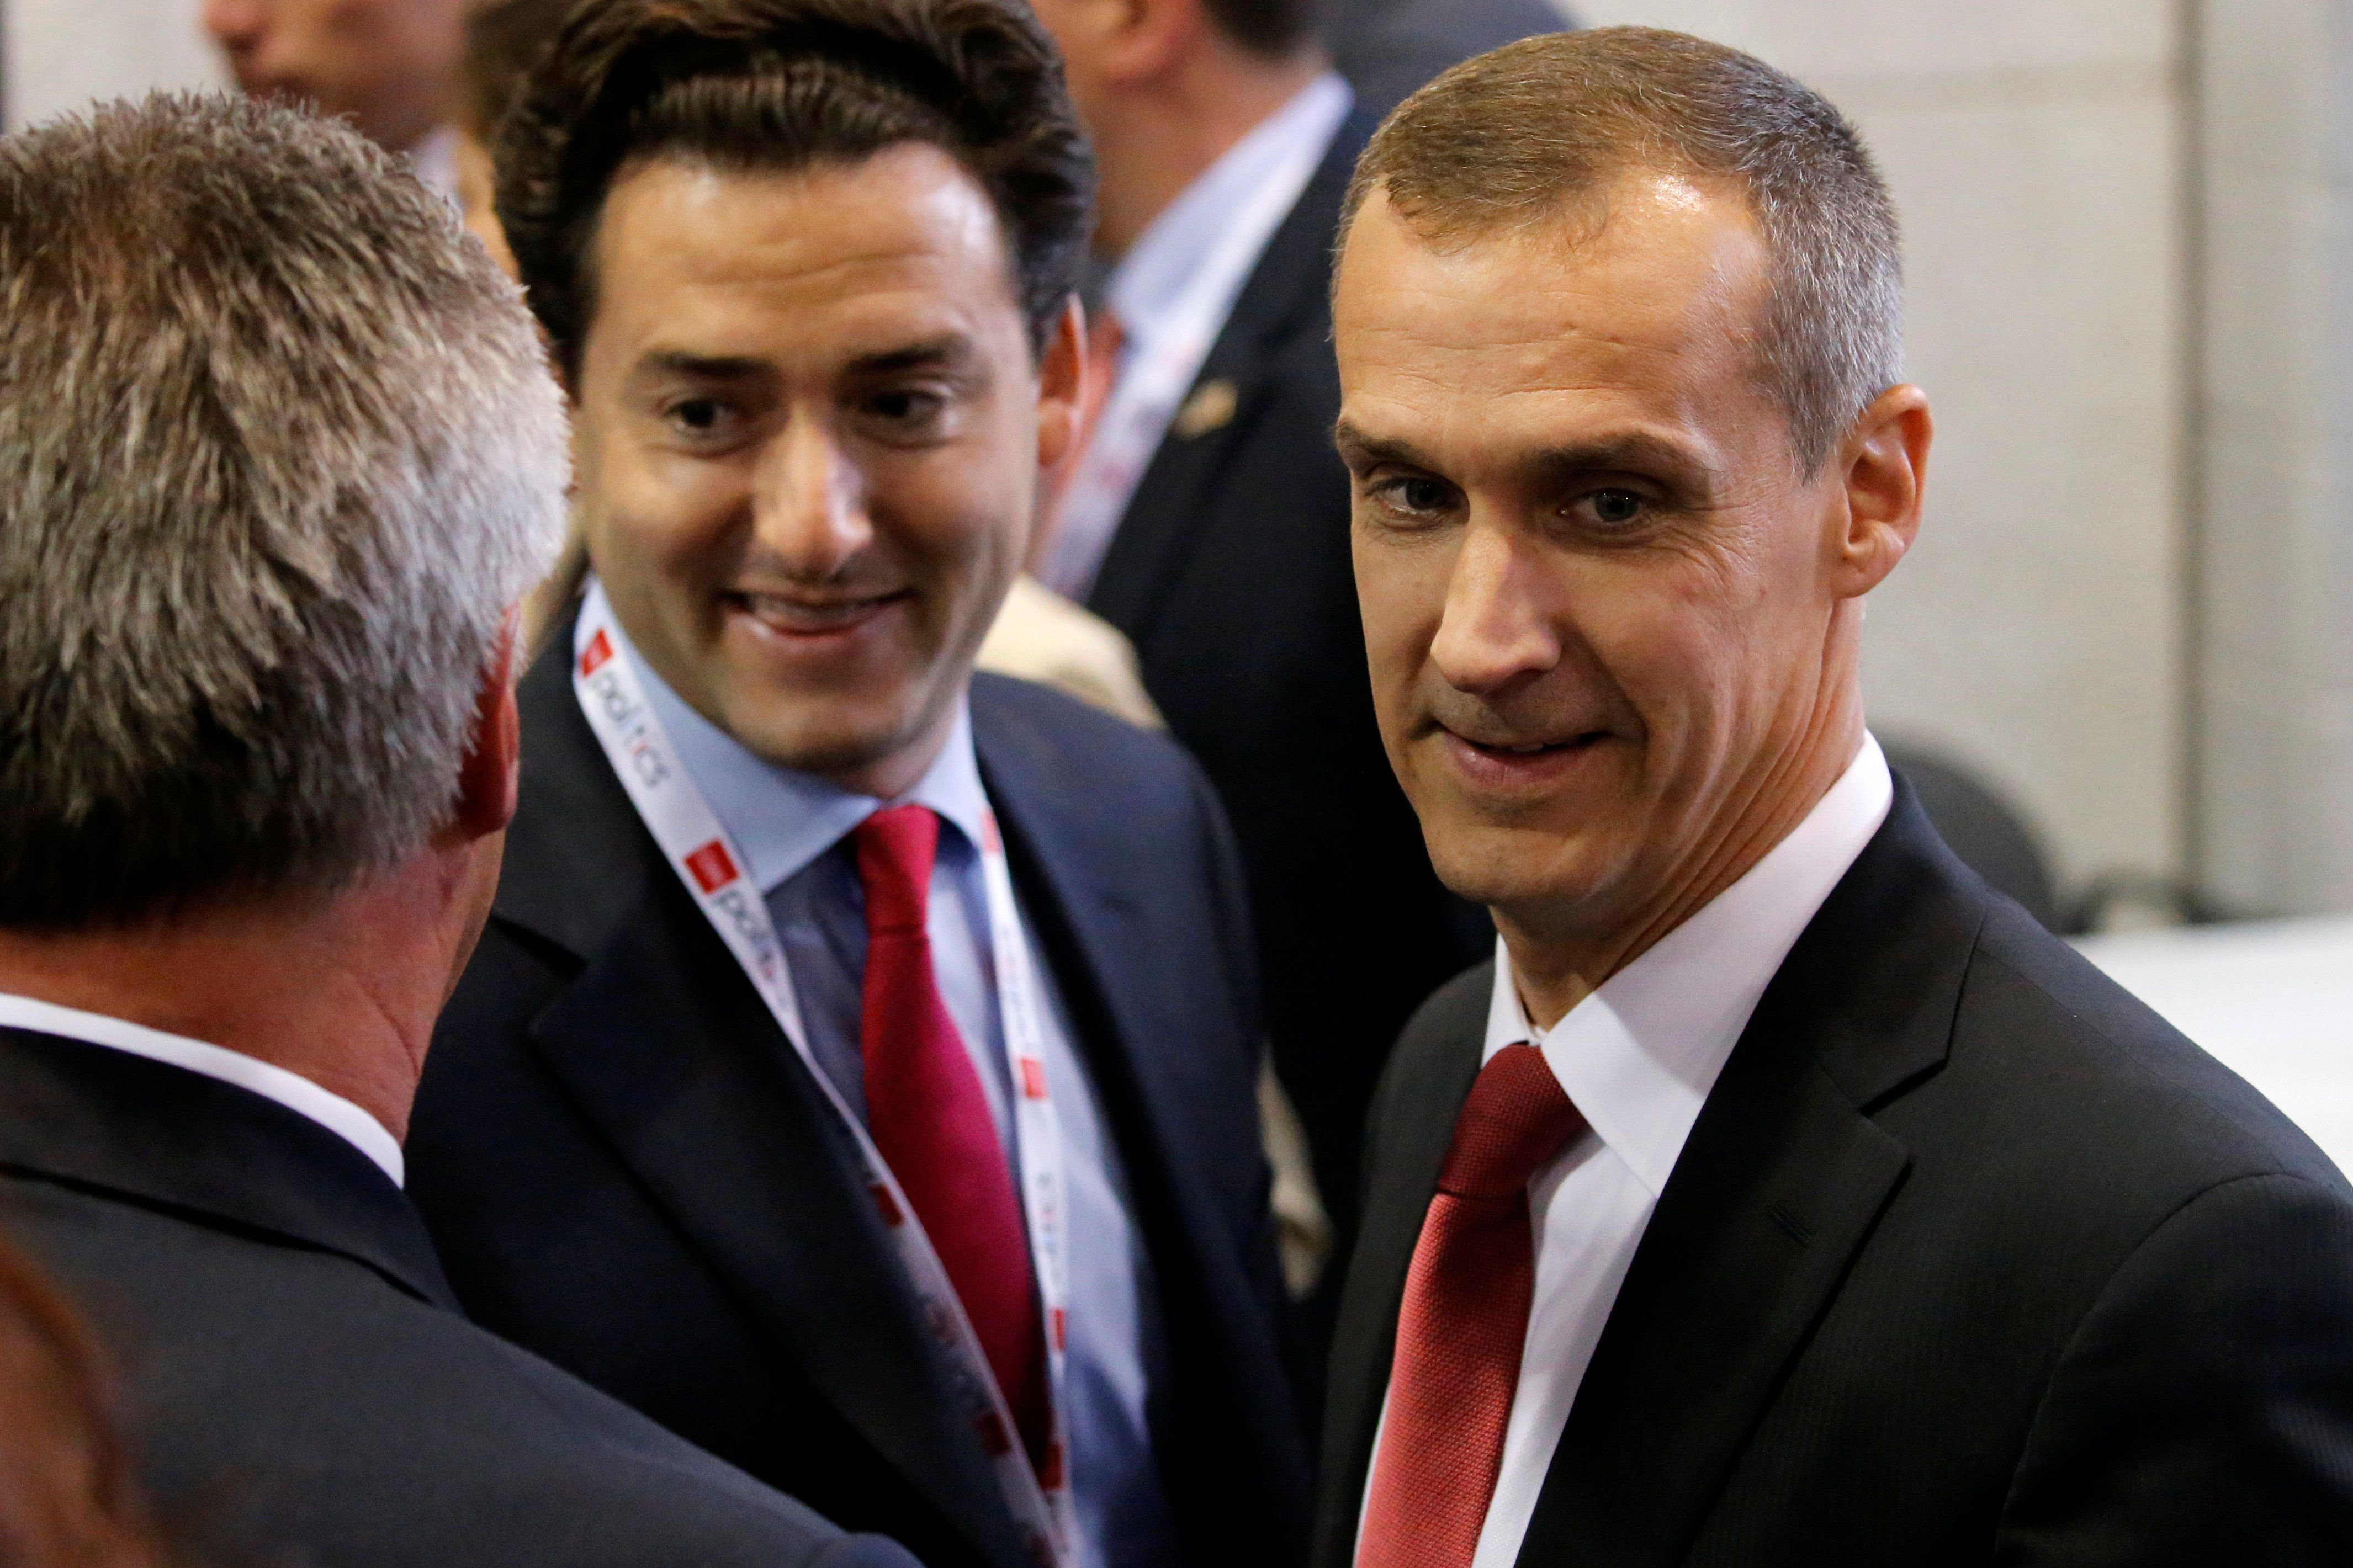 Corey Lewandowski (R), former campaign manager for Republican U.S. presidential nominee Donald Trump, arrives in the spin room after Trump and Democratic U.S. presidential nominee Hillary Clinton had their third and final 2016 presidential campaign debate at UNLV in Las Vegas, Nevada, U.S., October 19, 2016. REUTERS/Jonathan Ernst